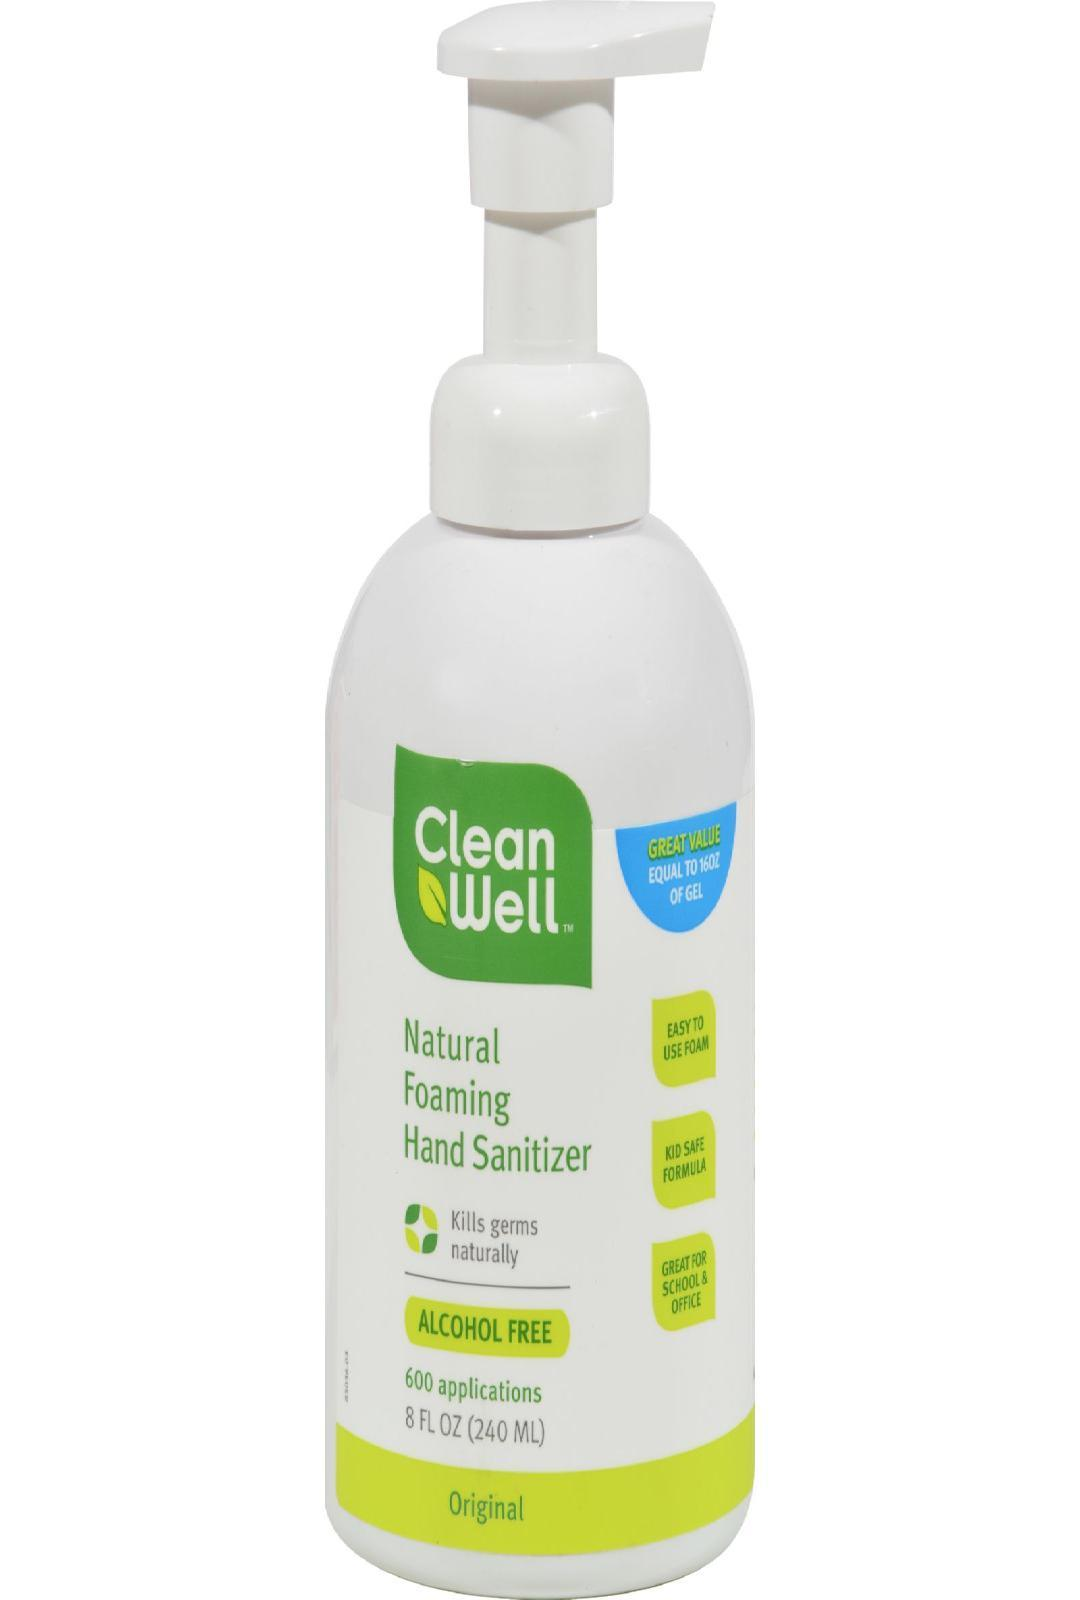 Cleanwell Hand Sanitizing Foam 8 Oz Hand Sanitizer Alcohol